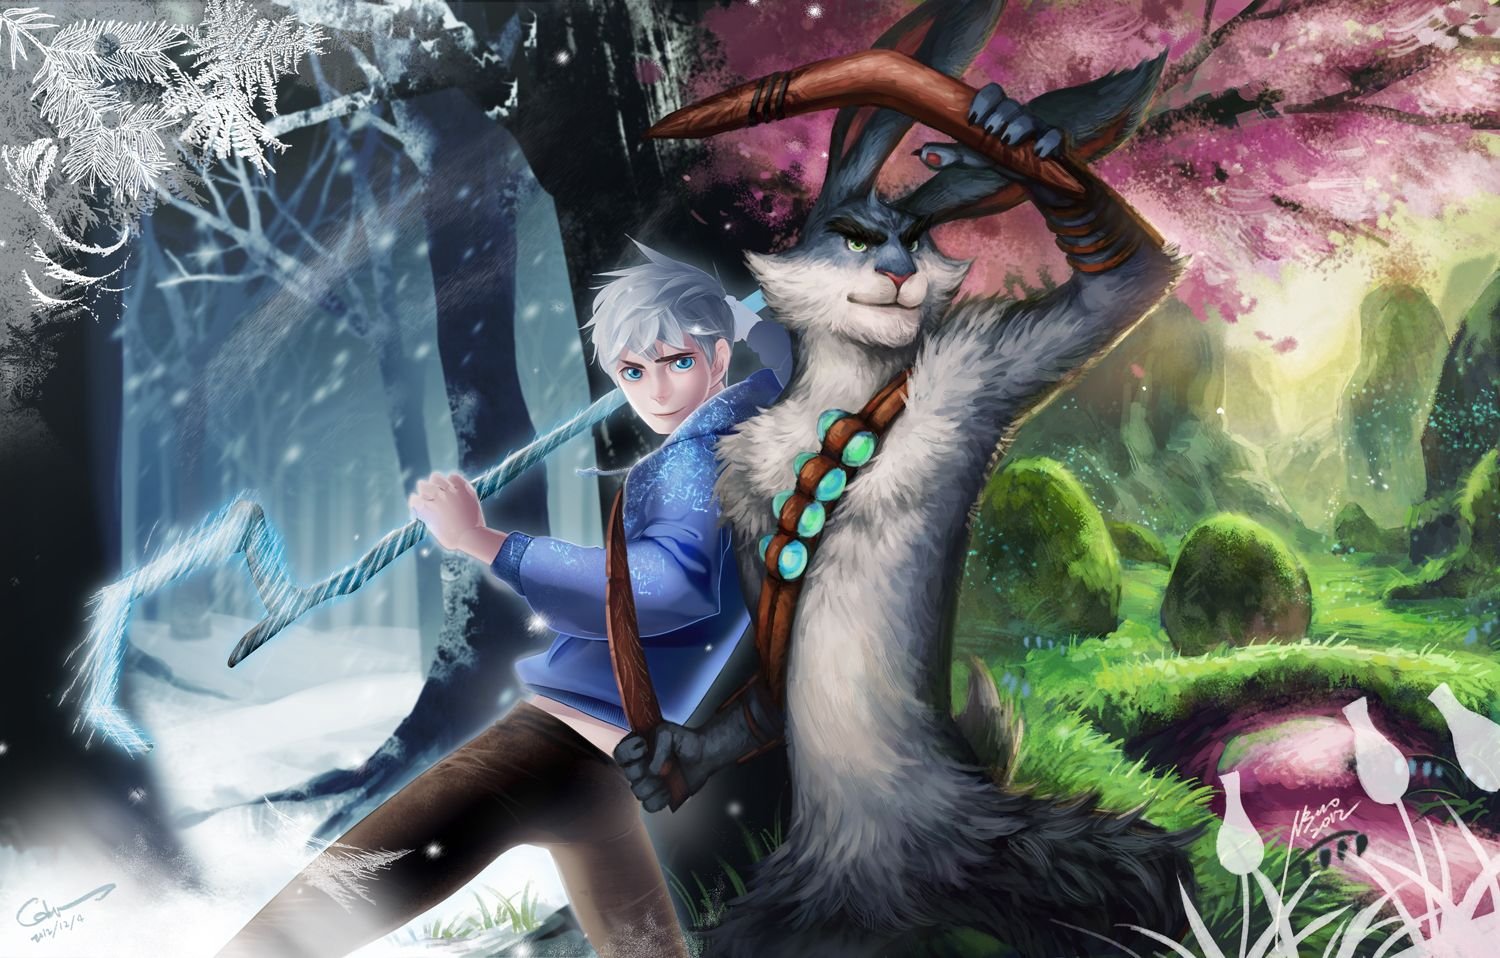 Rise of the guardians wallpapers hd wallpapers pinterest rise of the guardians wallpapers hd wallpapers pinterest dreamworks animation dreamworks and hd wallpaper thecheapjerseys Images